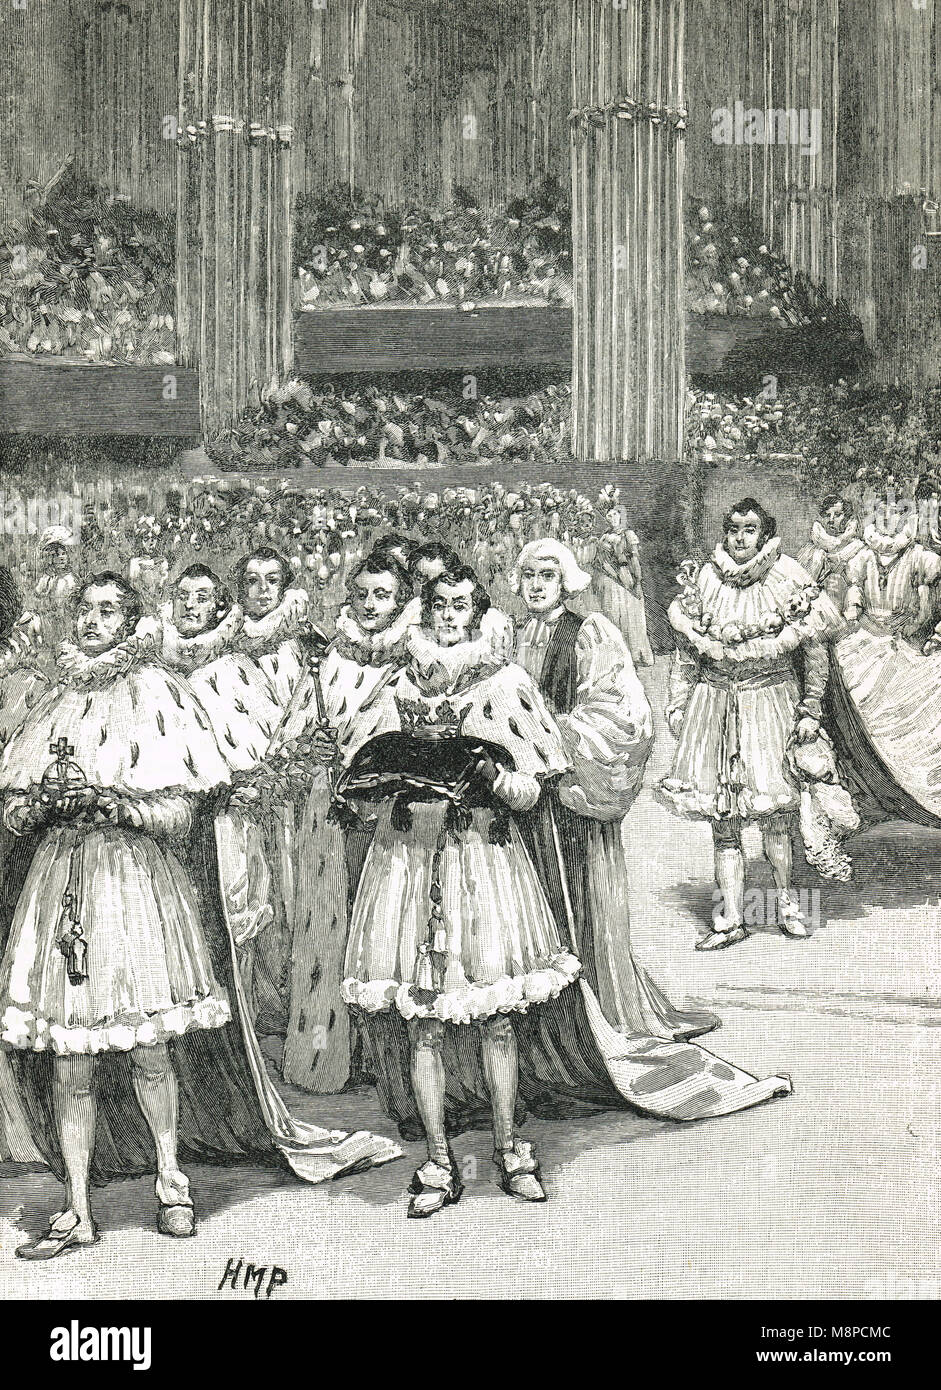 Coronation of William IV, 8 September 1831, Westminster Abbey - Stock Image